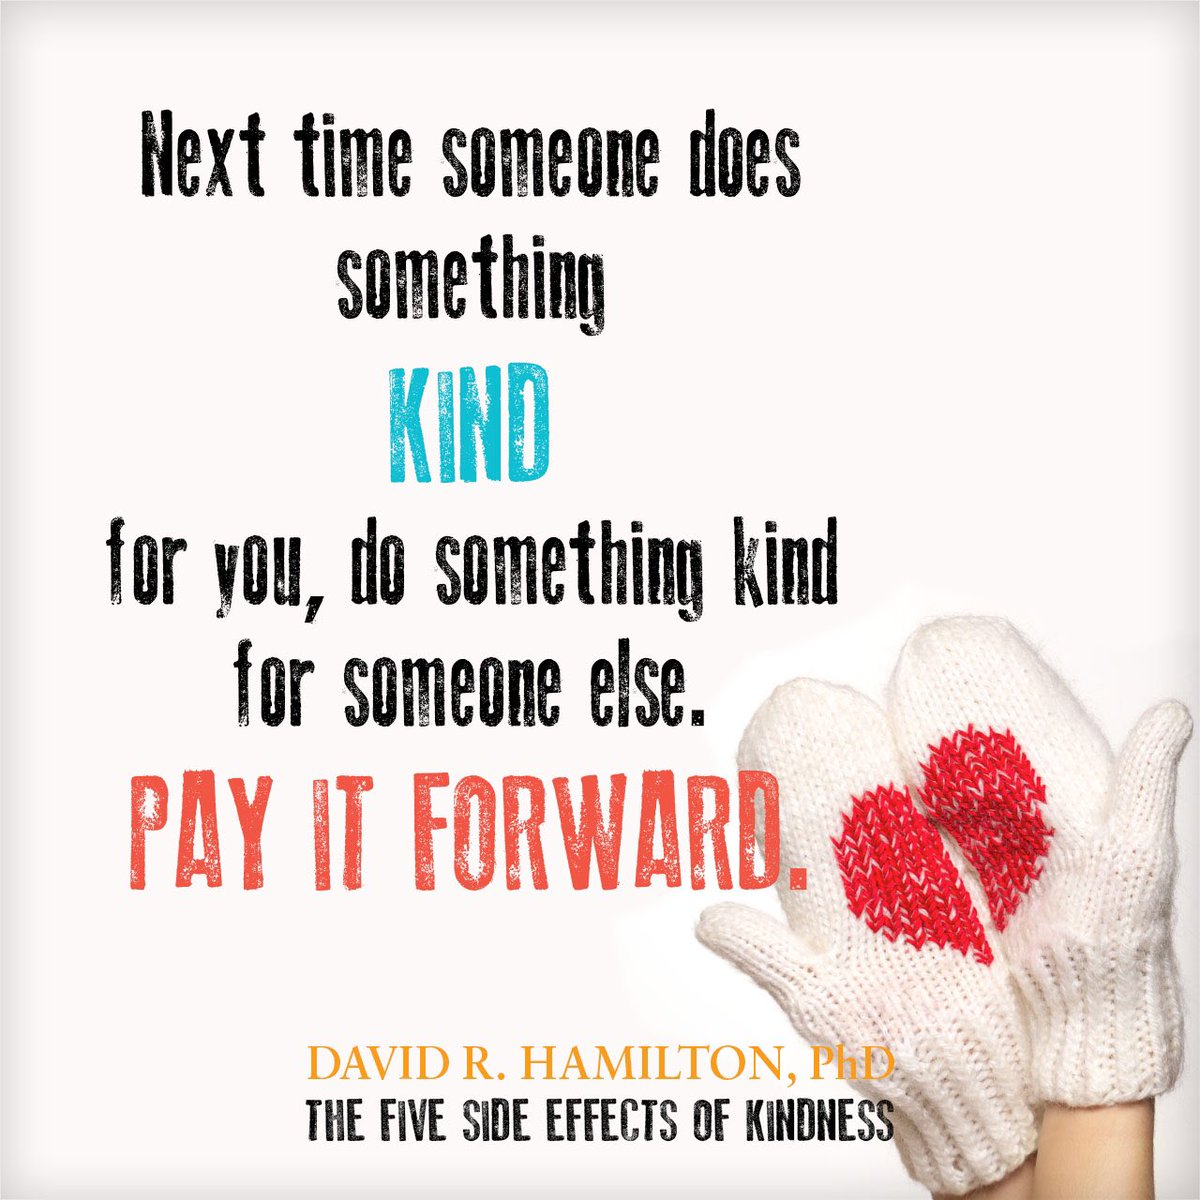 Happy #RandomActsOfKindnessDay Every act of kindness makes a difference, however small.